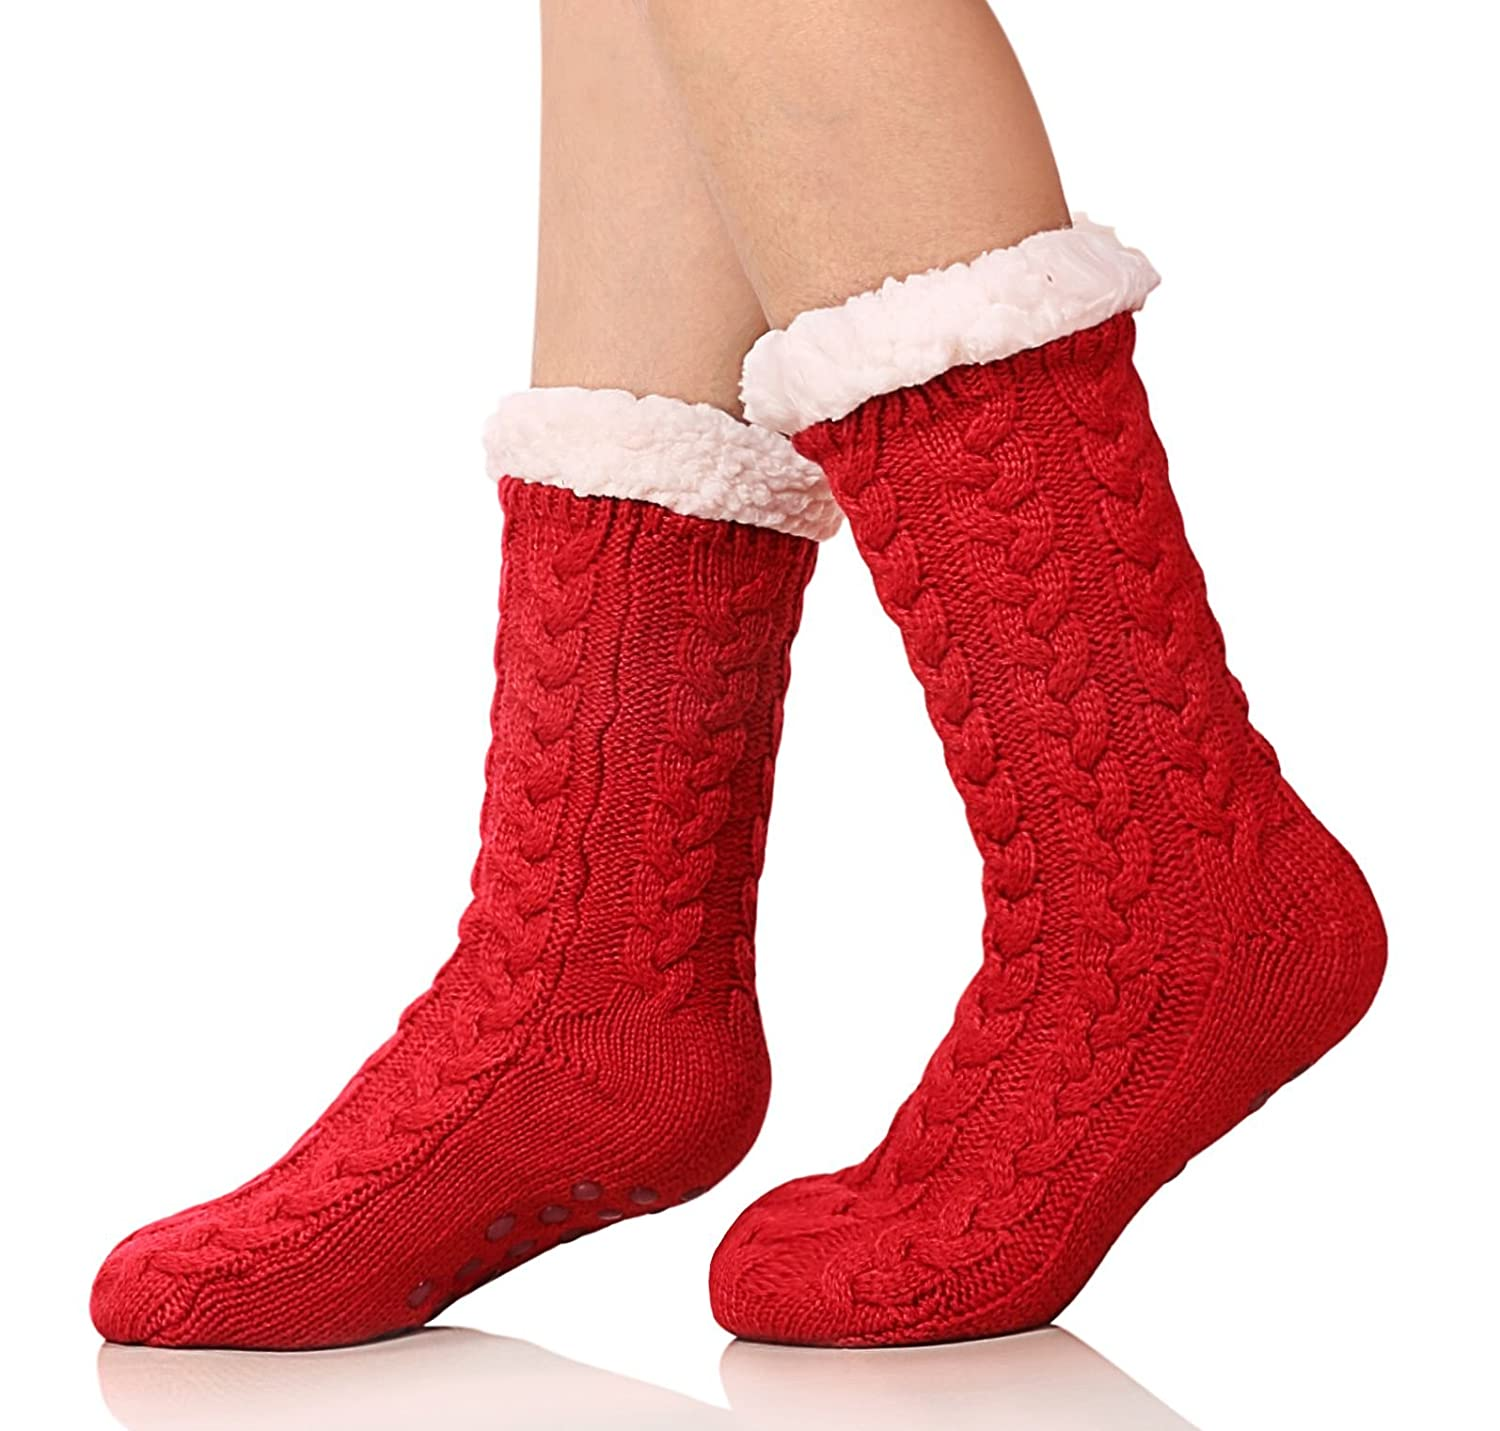 SDBING Women's Premium Winter Warm Wool Cotton Blend Crew Socks Collection